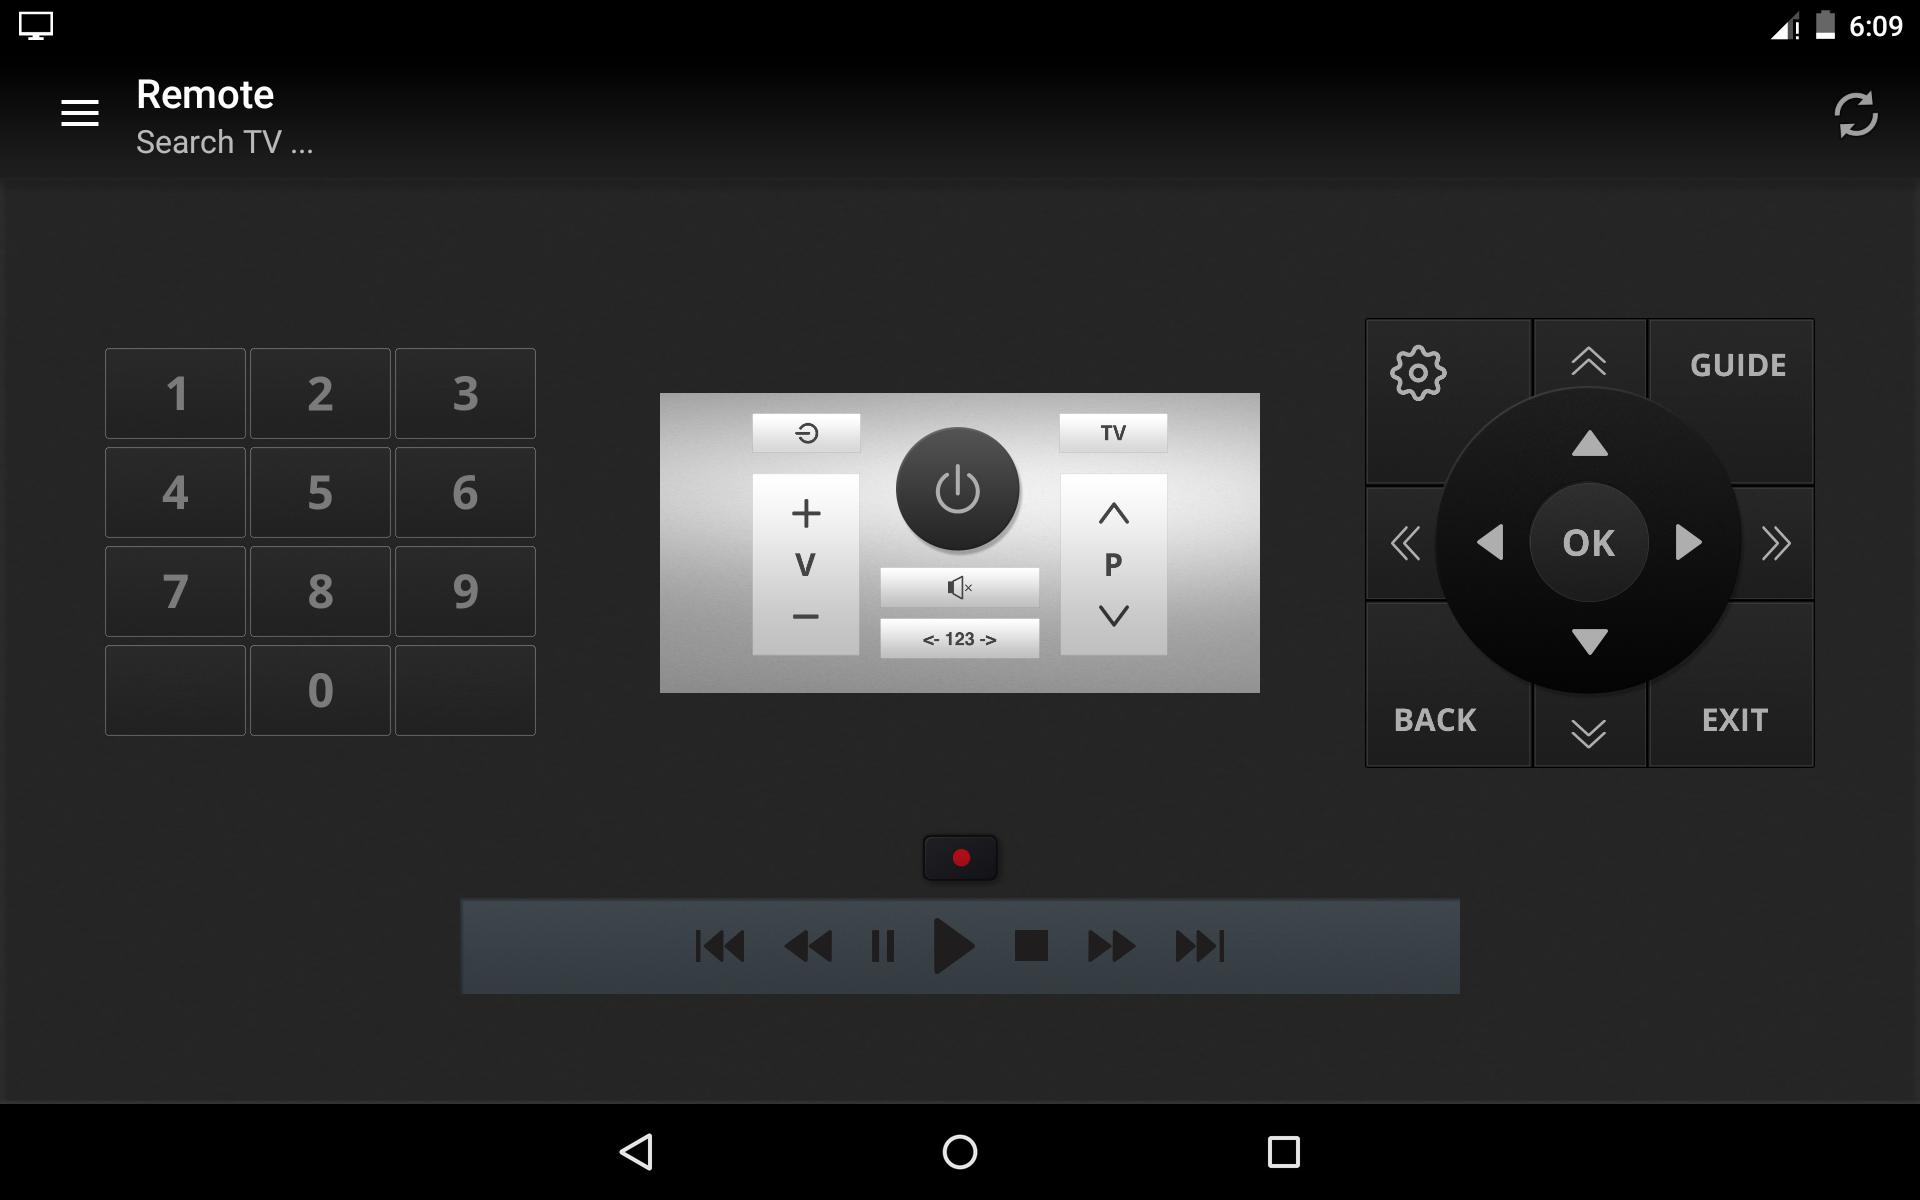 Remote For Toshiba Tv For Android Apk Download